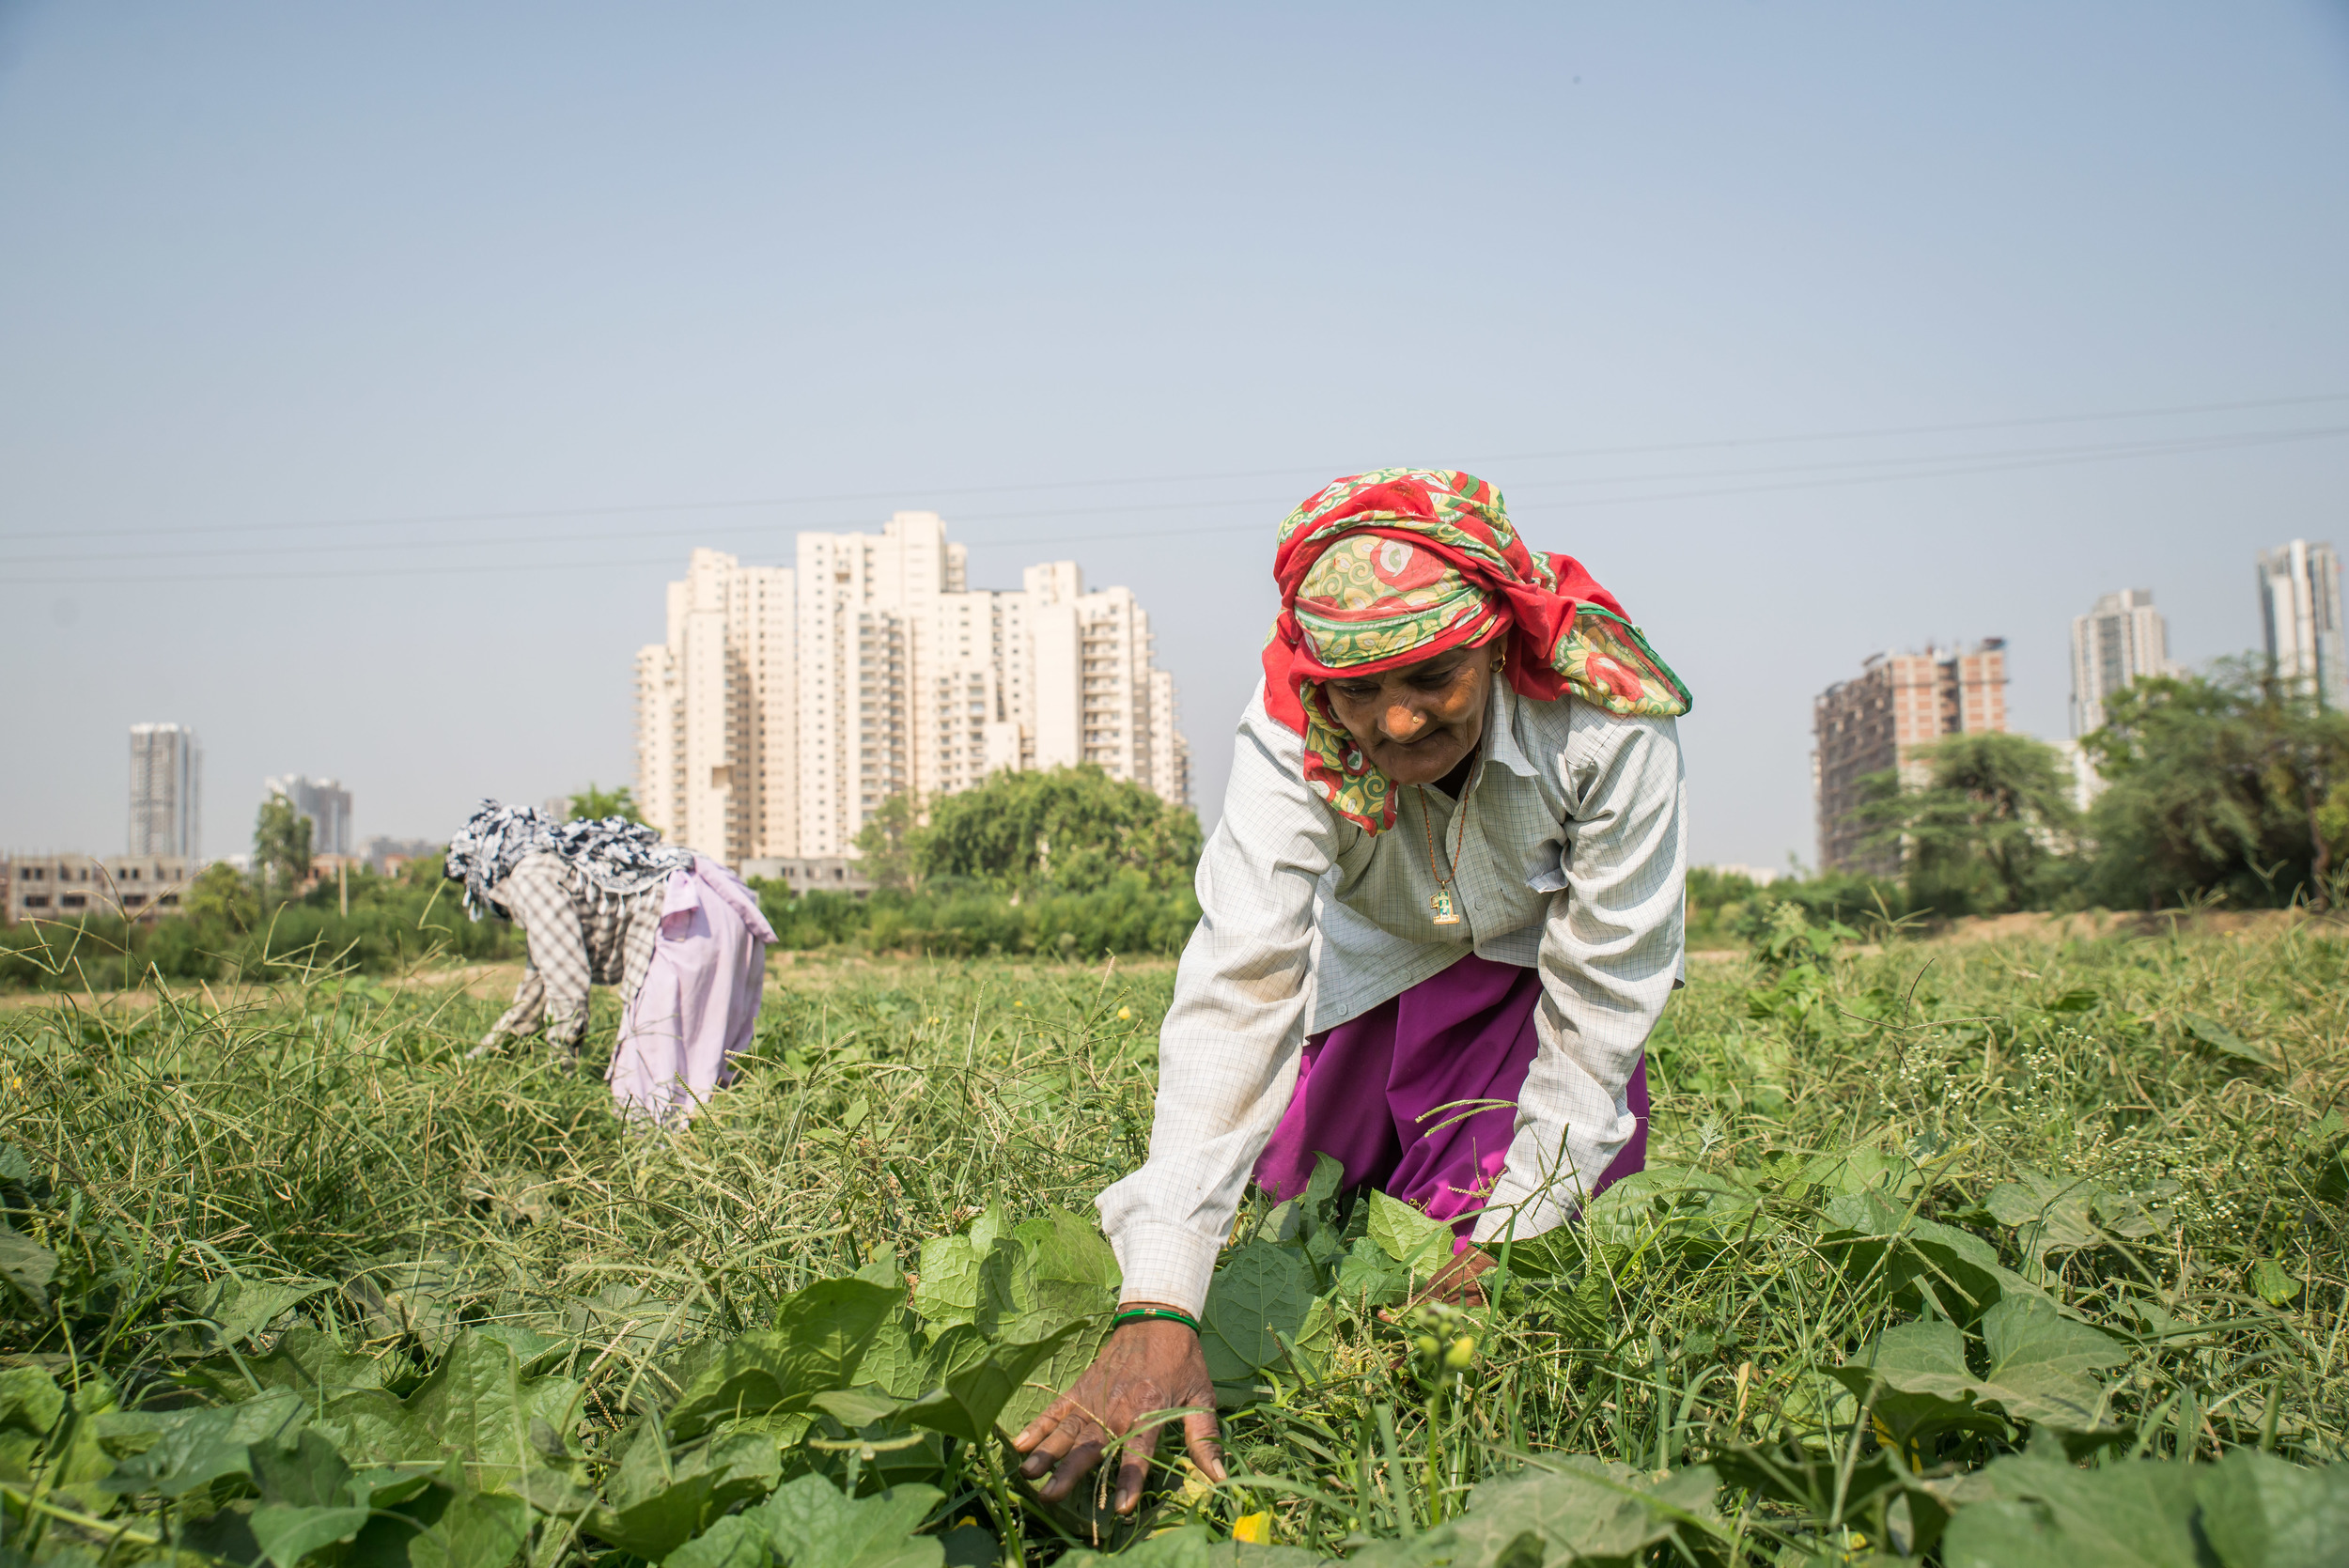 """The only remnant of her ancestral farmland is owned by an outsider, a man whose name she doesn't even know. Now, these two village women are employed to work 8 hours for $3.00 a day. """"We no longer grow our own food but have to go to the market to buy it,"""" she laments, """"and there is no strength in that food."""""""